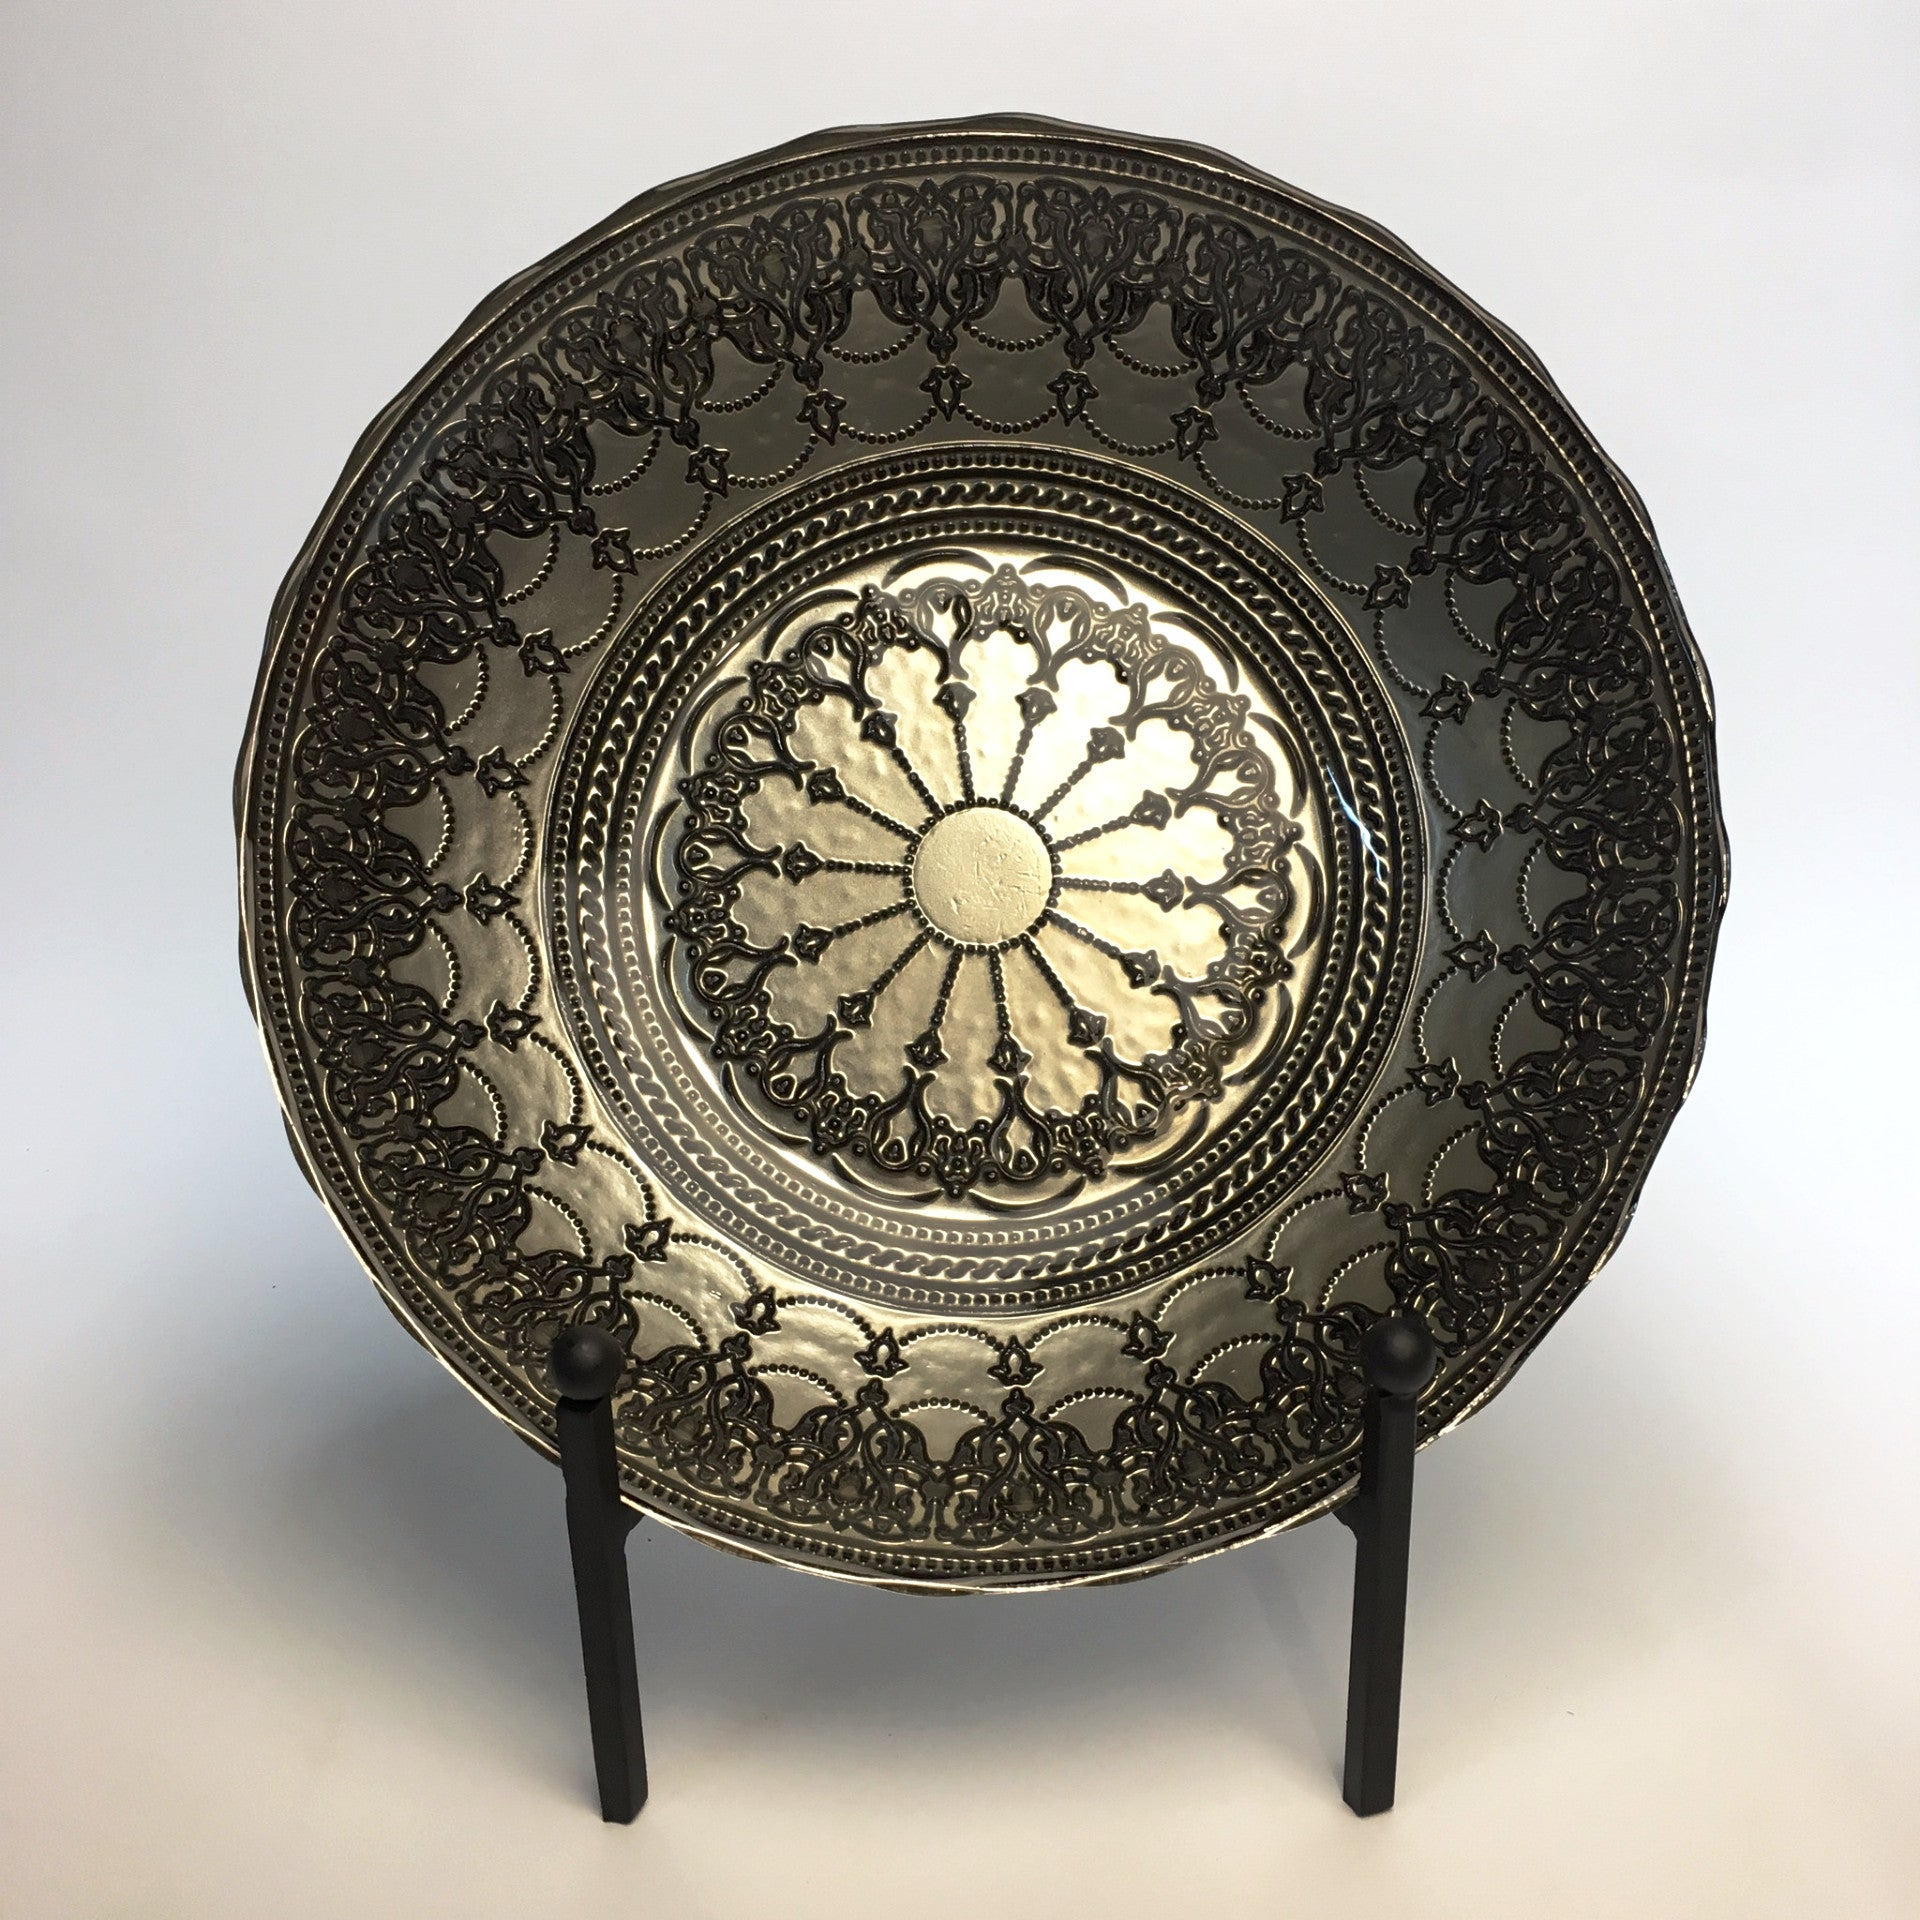 Turkish Bahar Bowl Black Lace